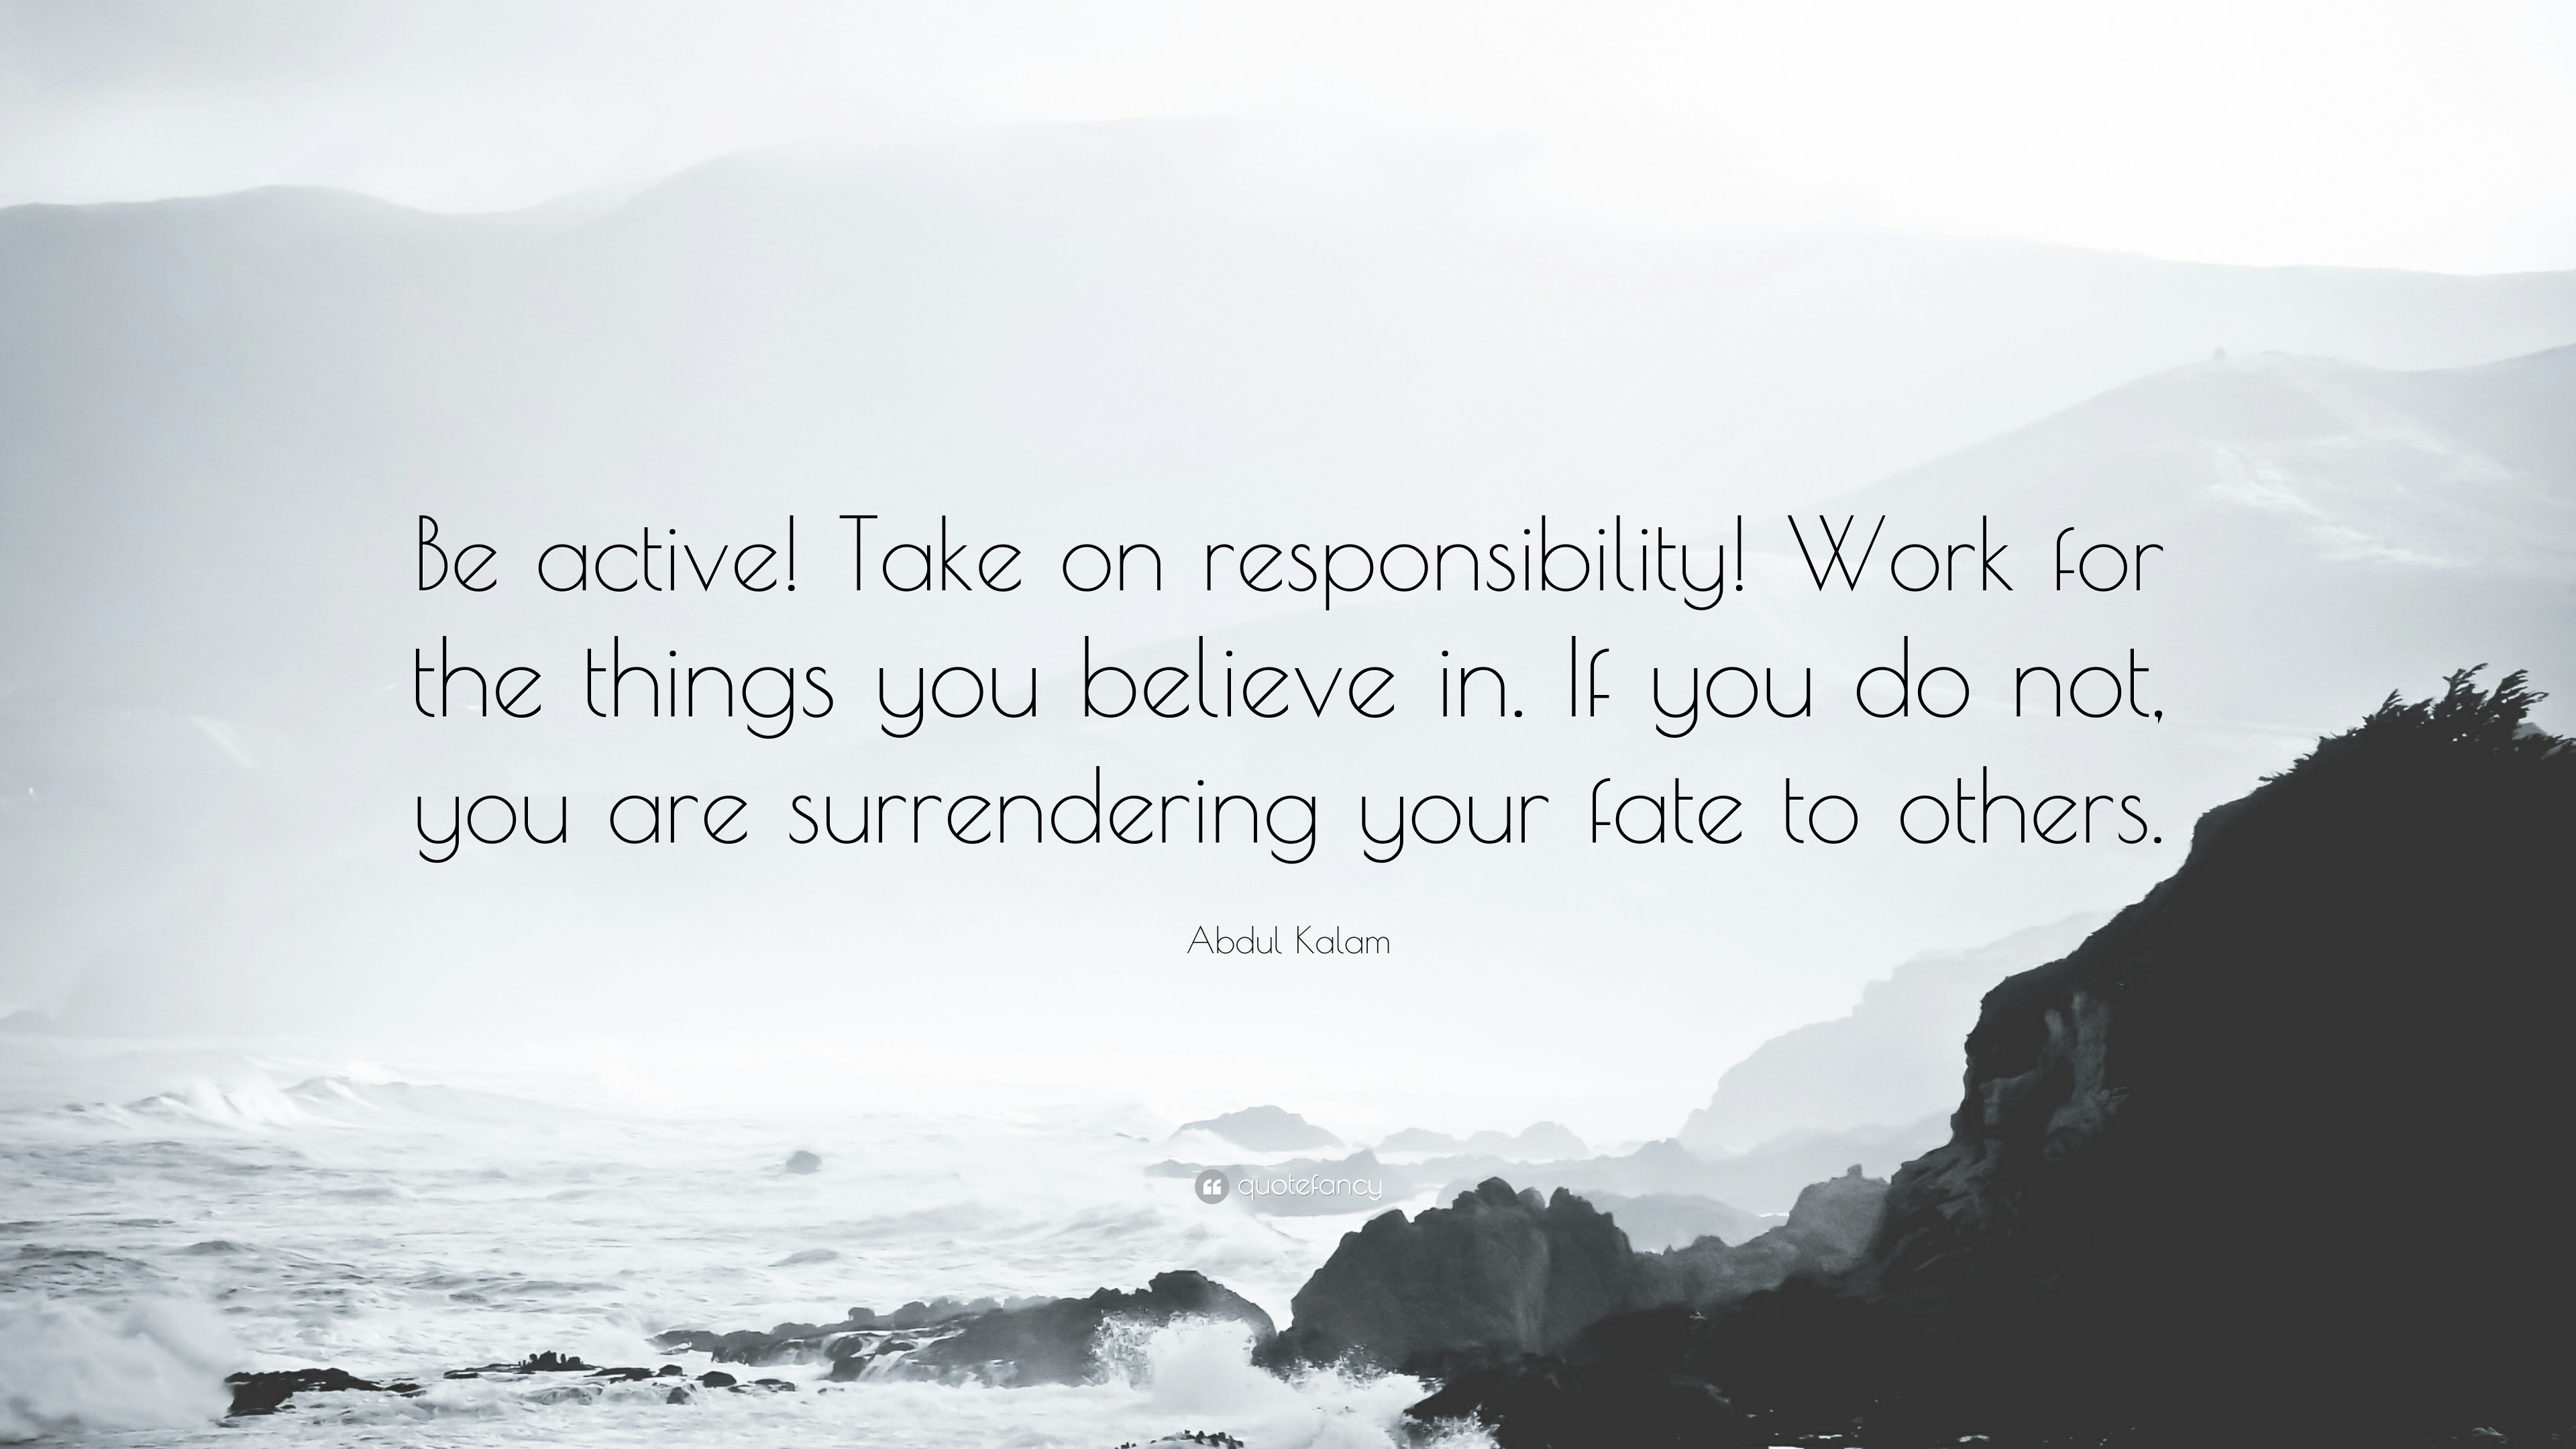 abdul kalam quote be active take on responsibility work for take on responsibility work for the things